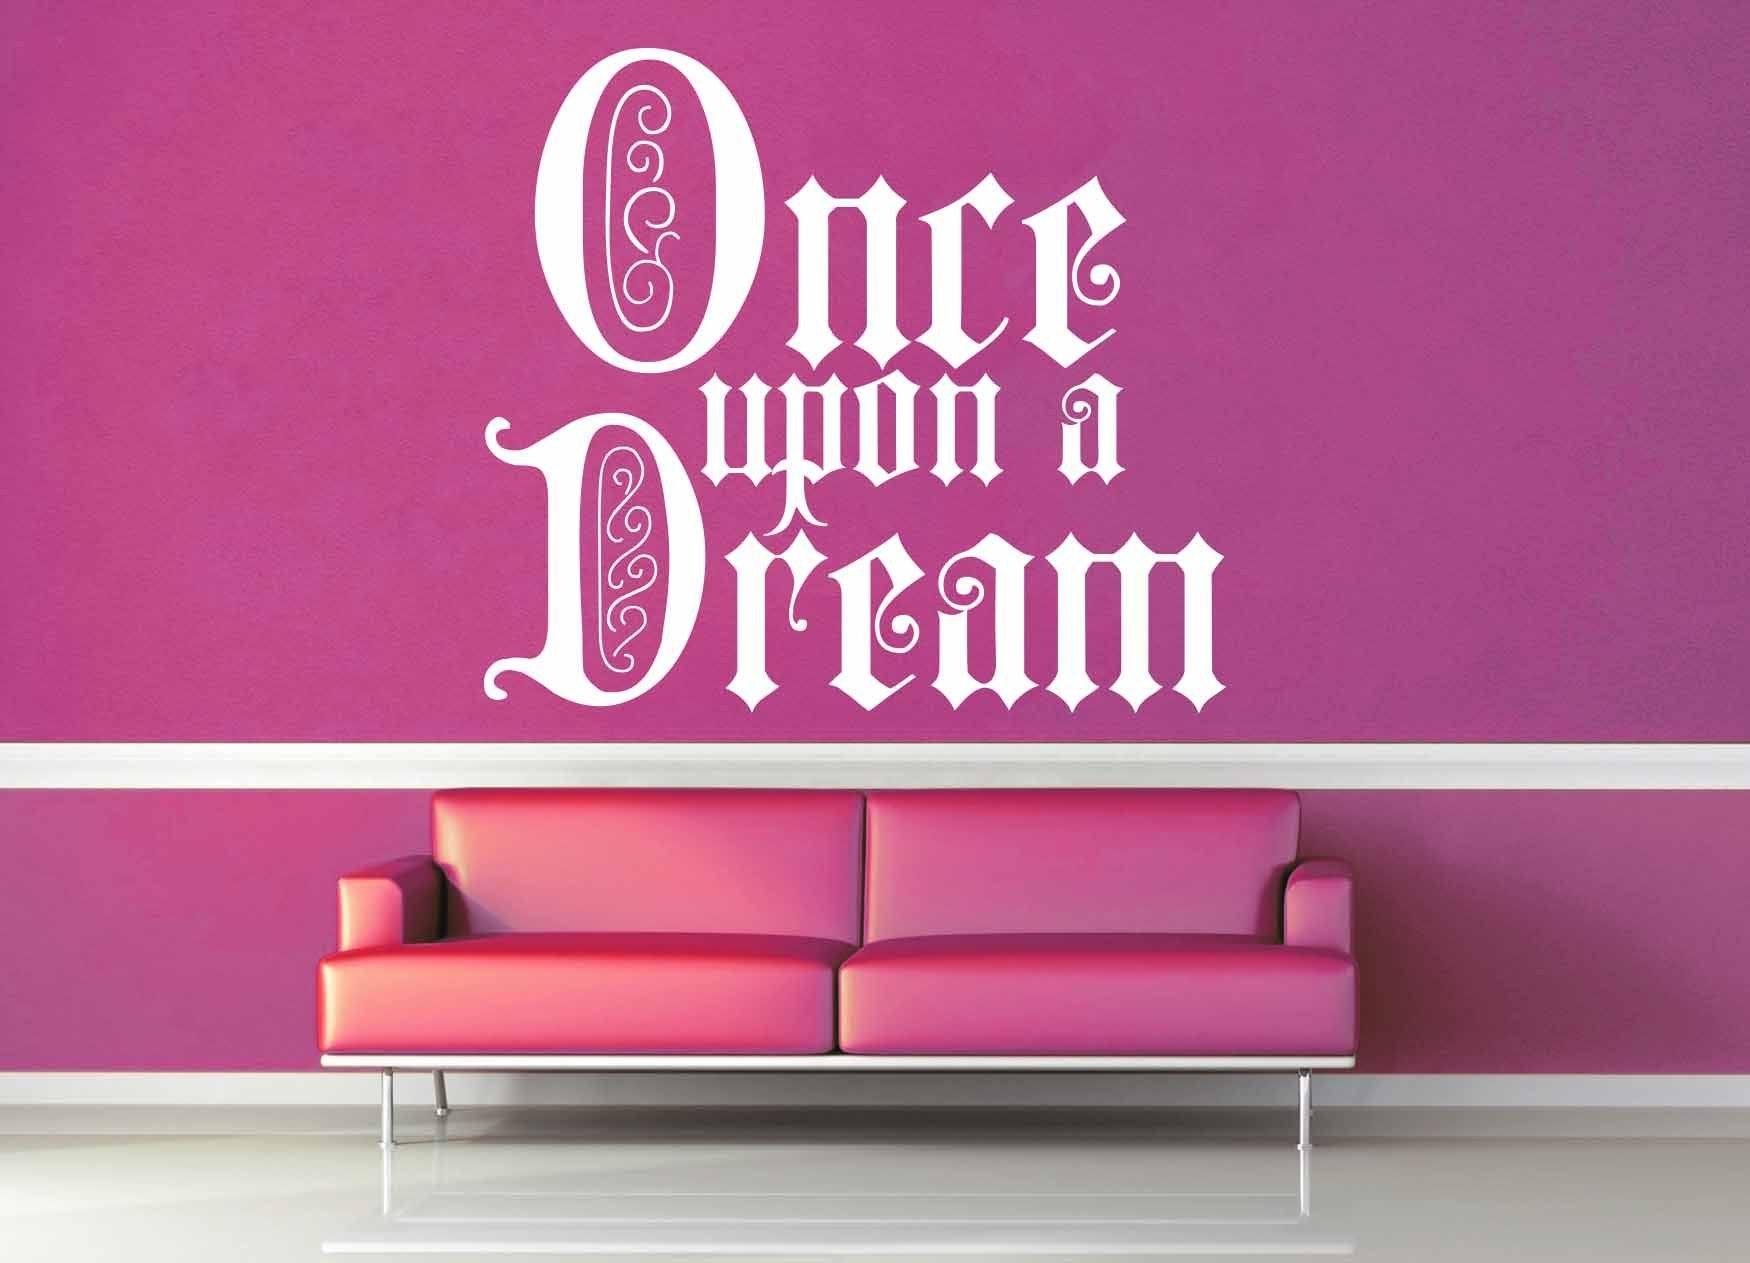 Once Upon a Dream - Wall Decal & Once Upon a Dream - Wall Decal u2013 geekerymade